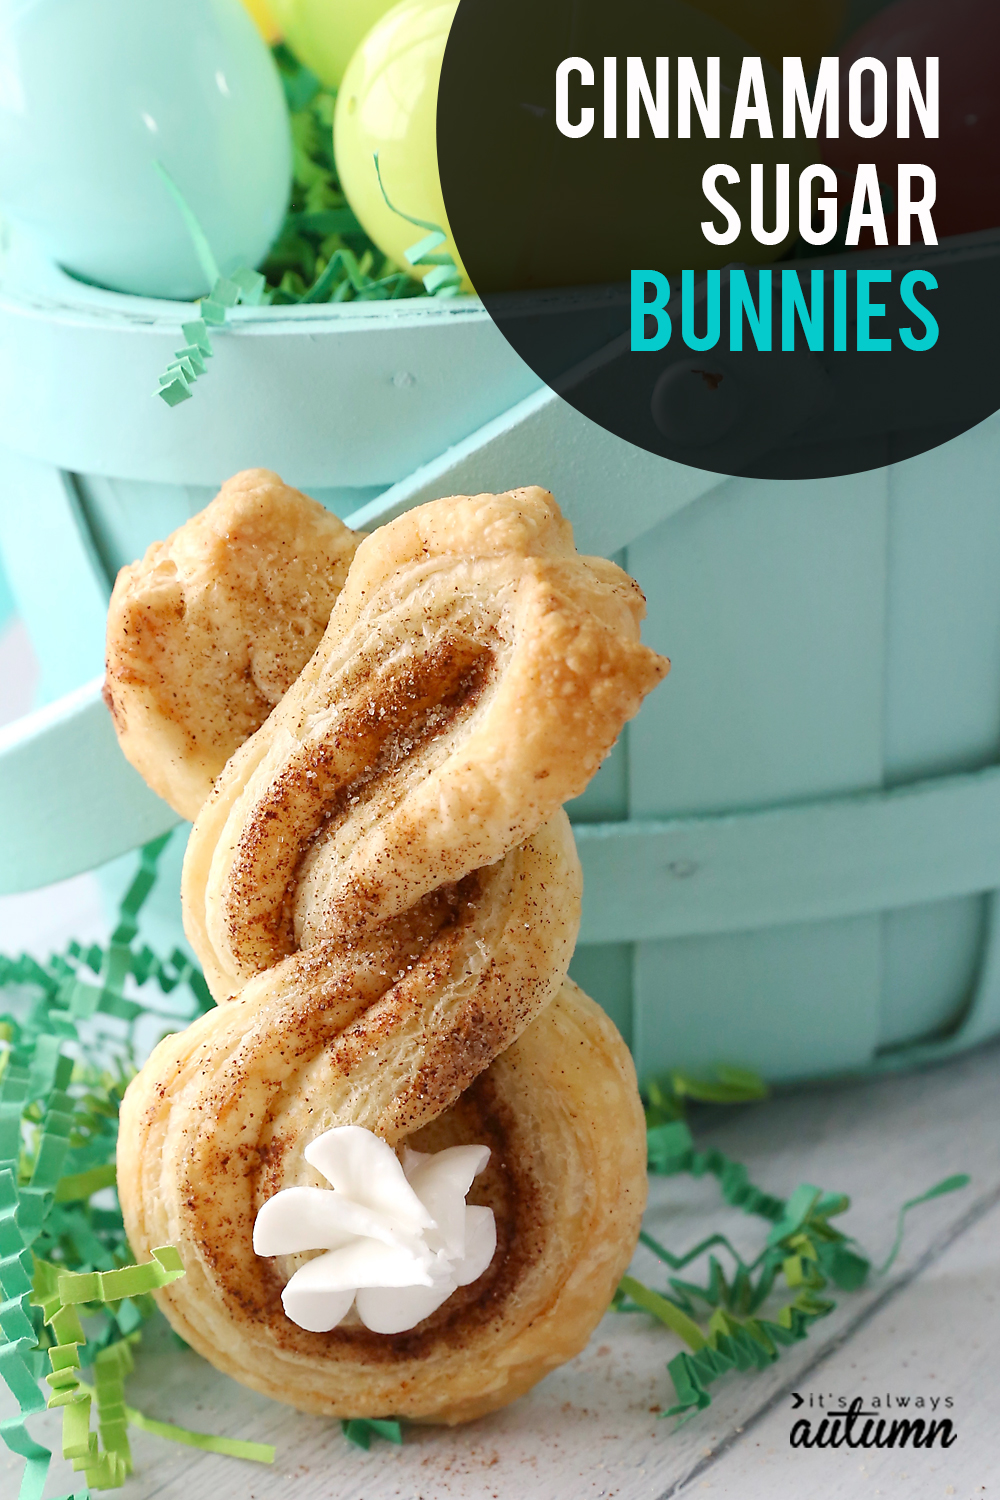 Cinnamon sugar Easter bunny twists are a fun, easy Easter treat to make with your kids.